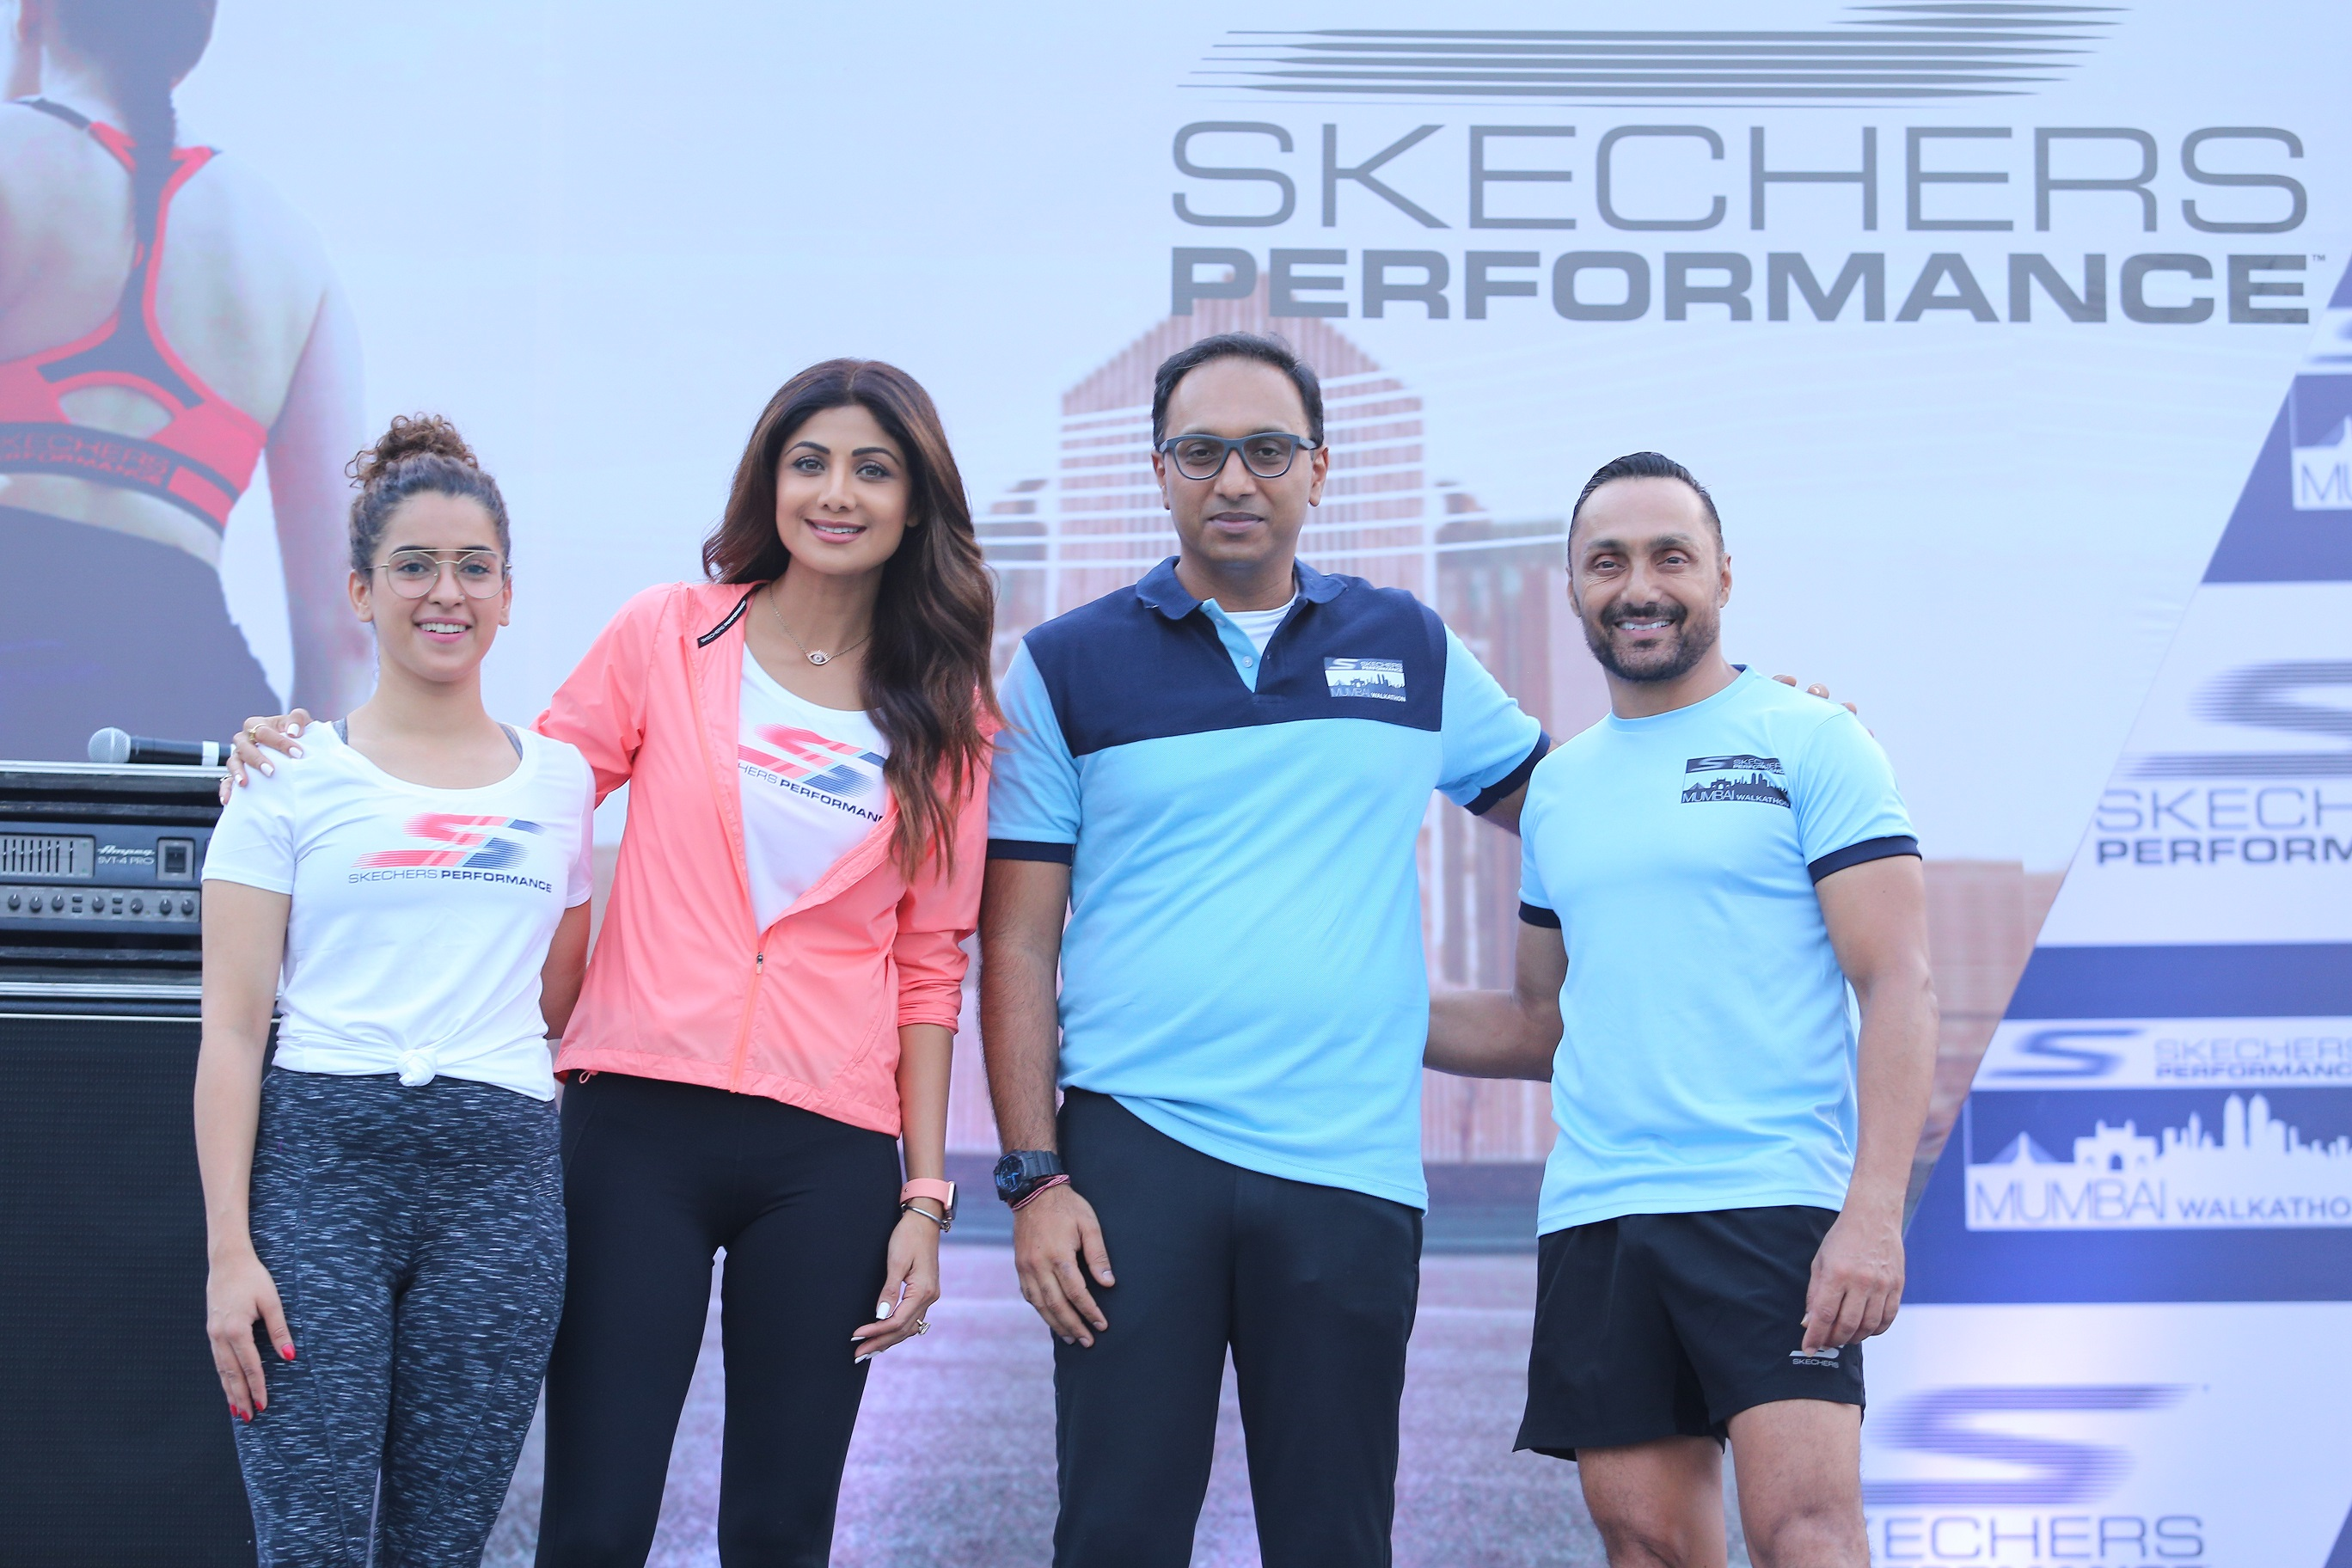 to R) Sanya Malthora, Shilpa Shetty, Rahul Vira, CEO Skechers India,....JPG